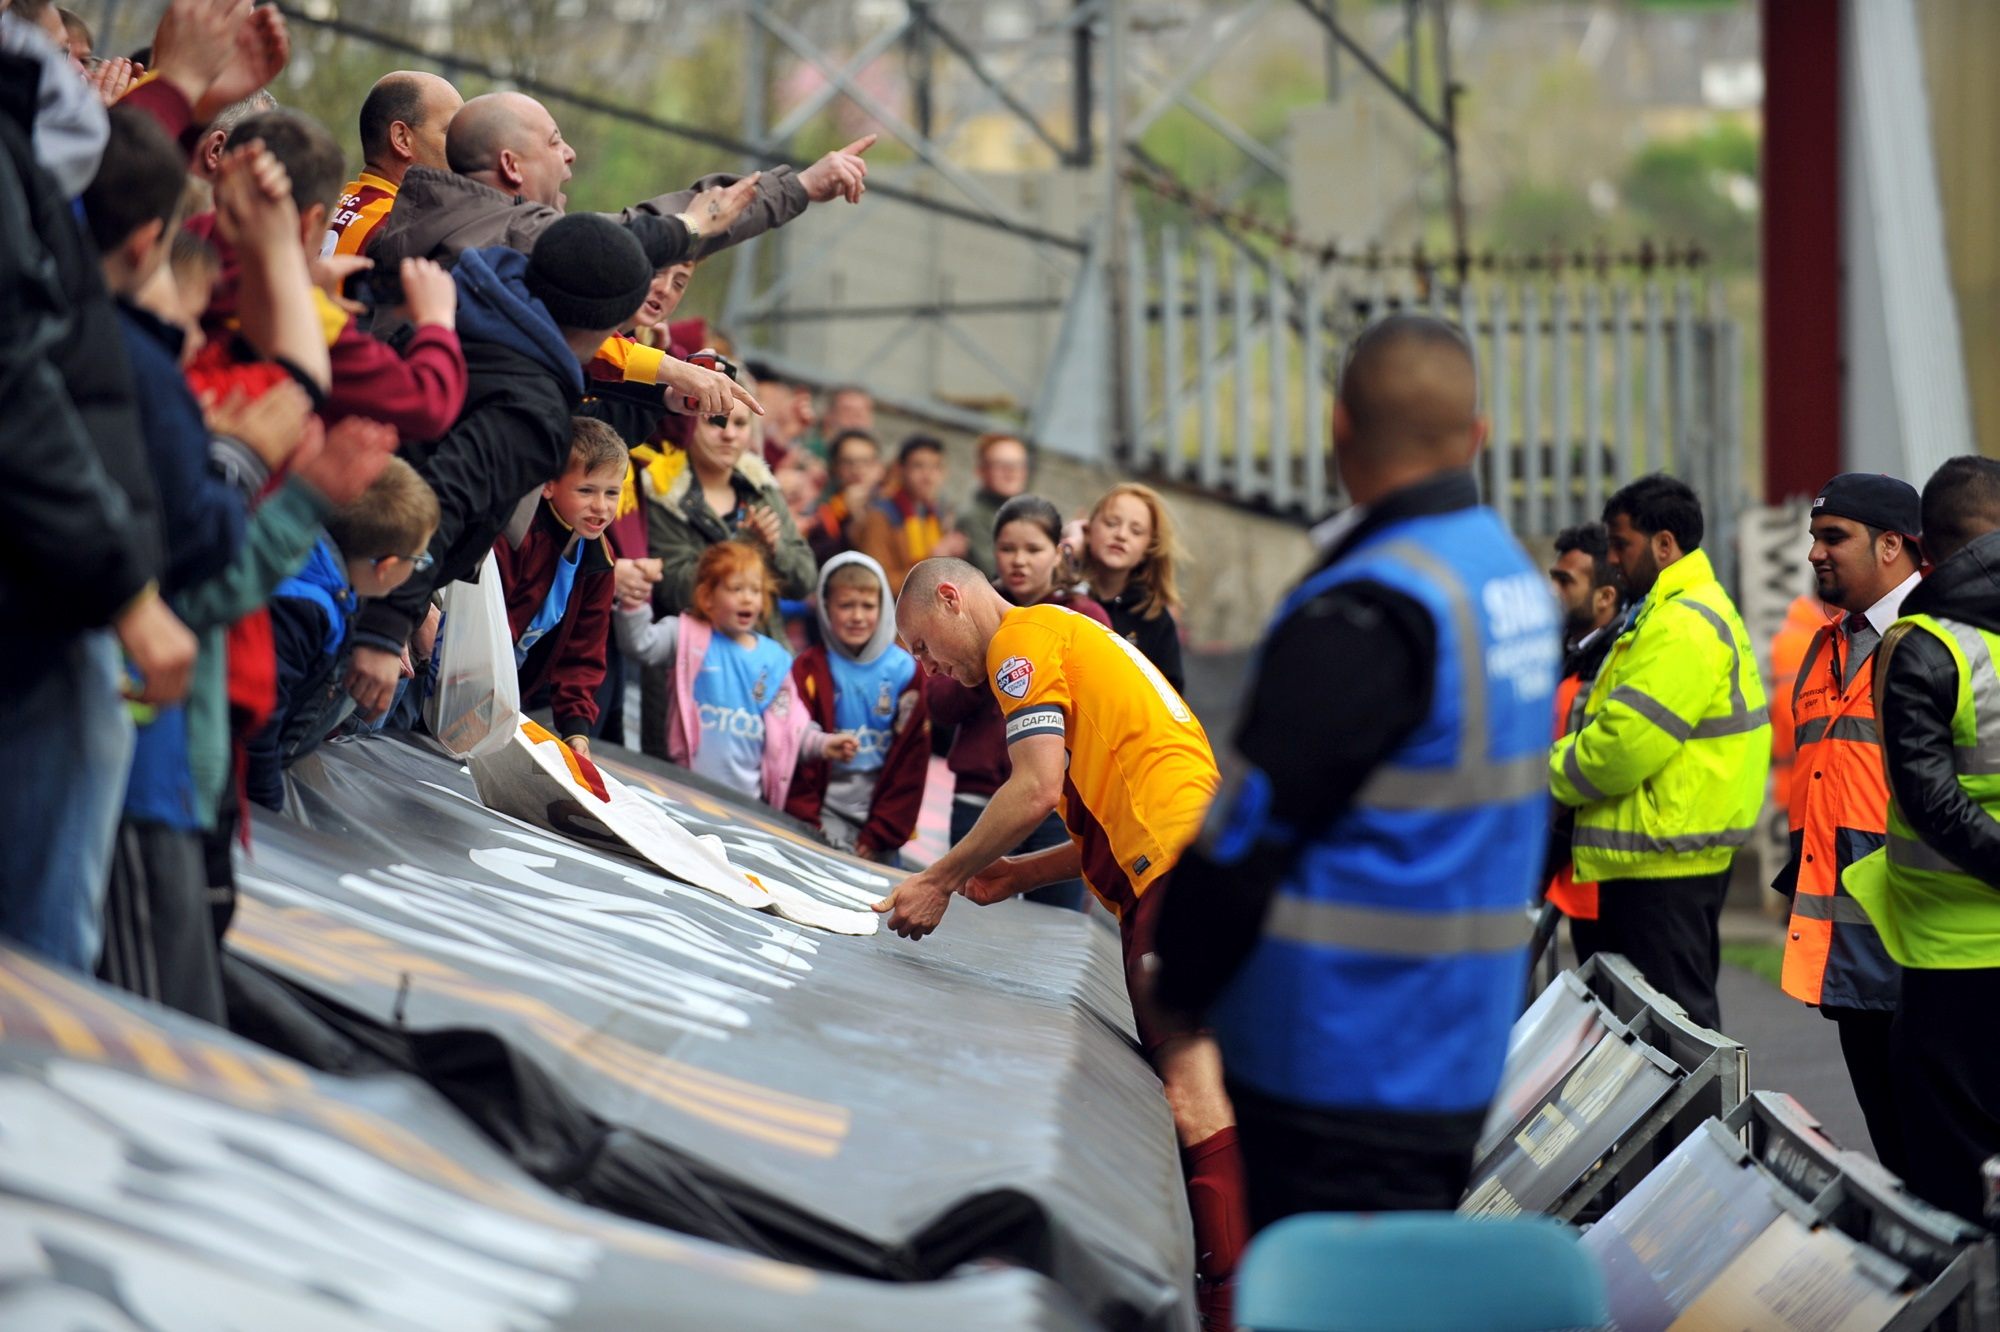 Gary Jones signs autographs for fans at City's last home game of the season against Crawley